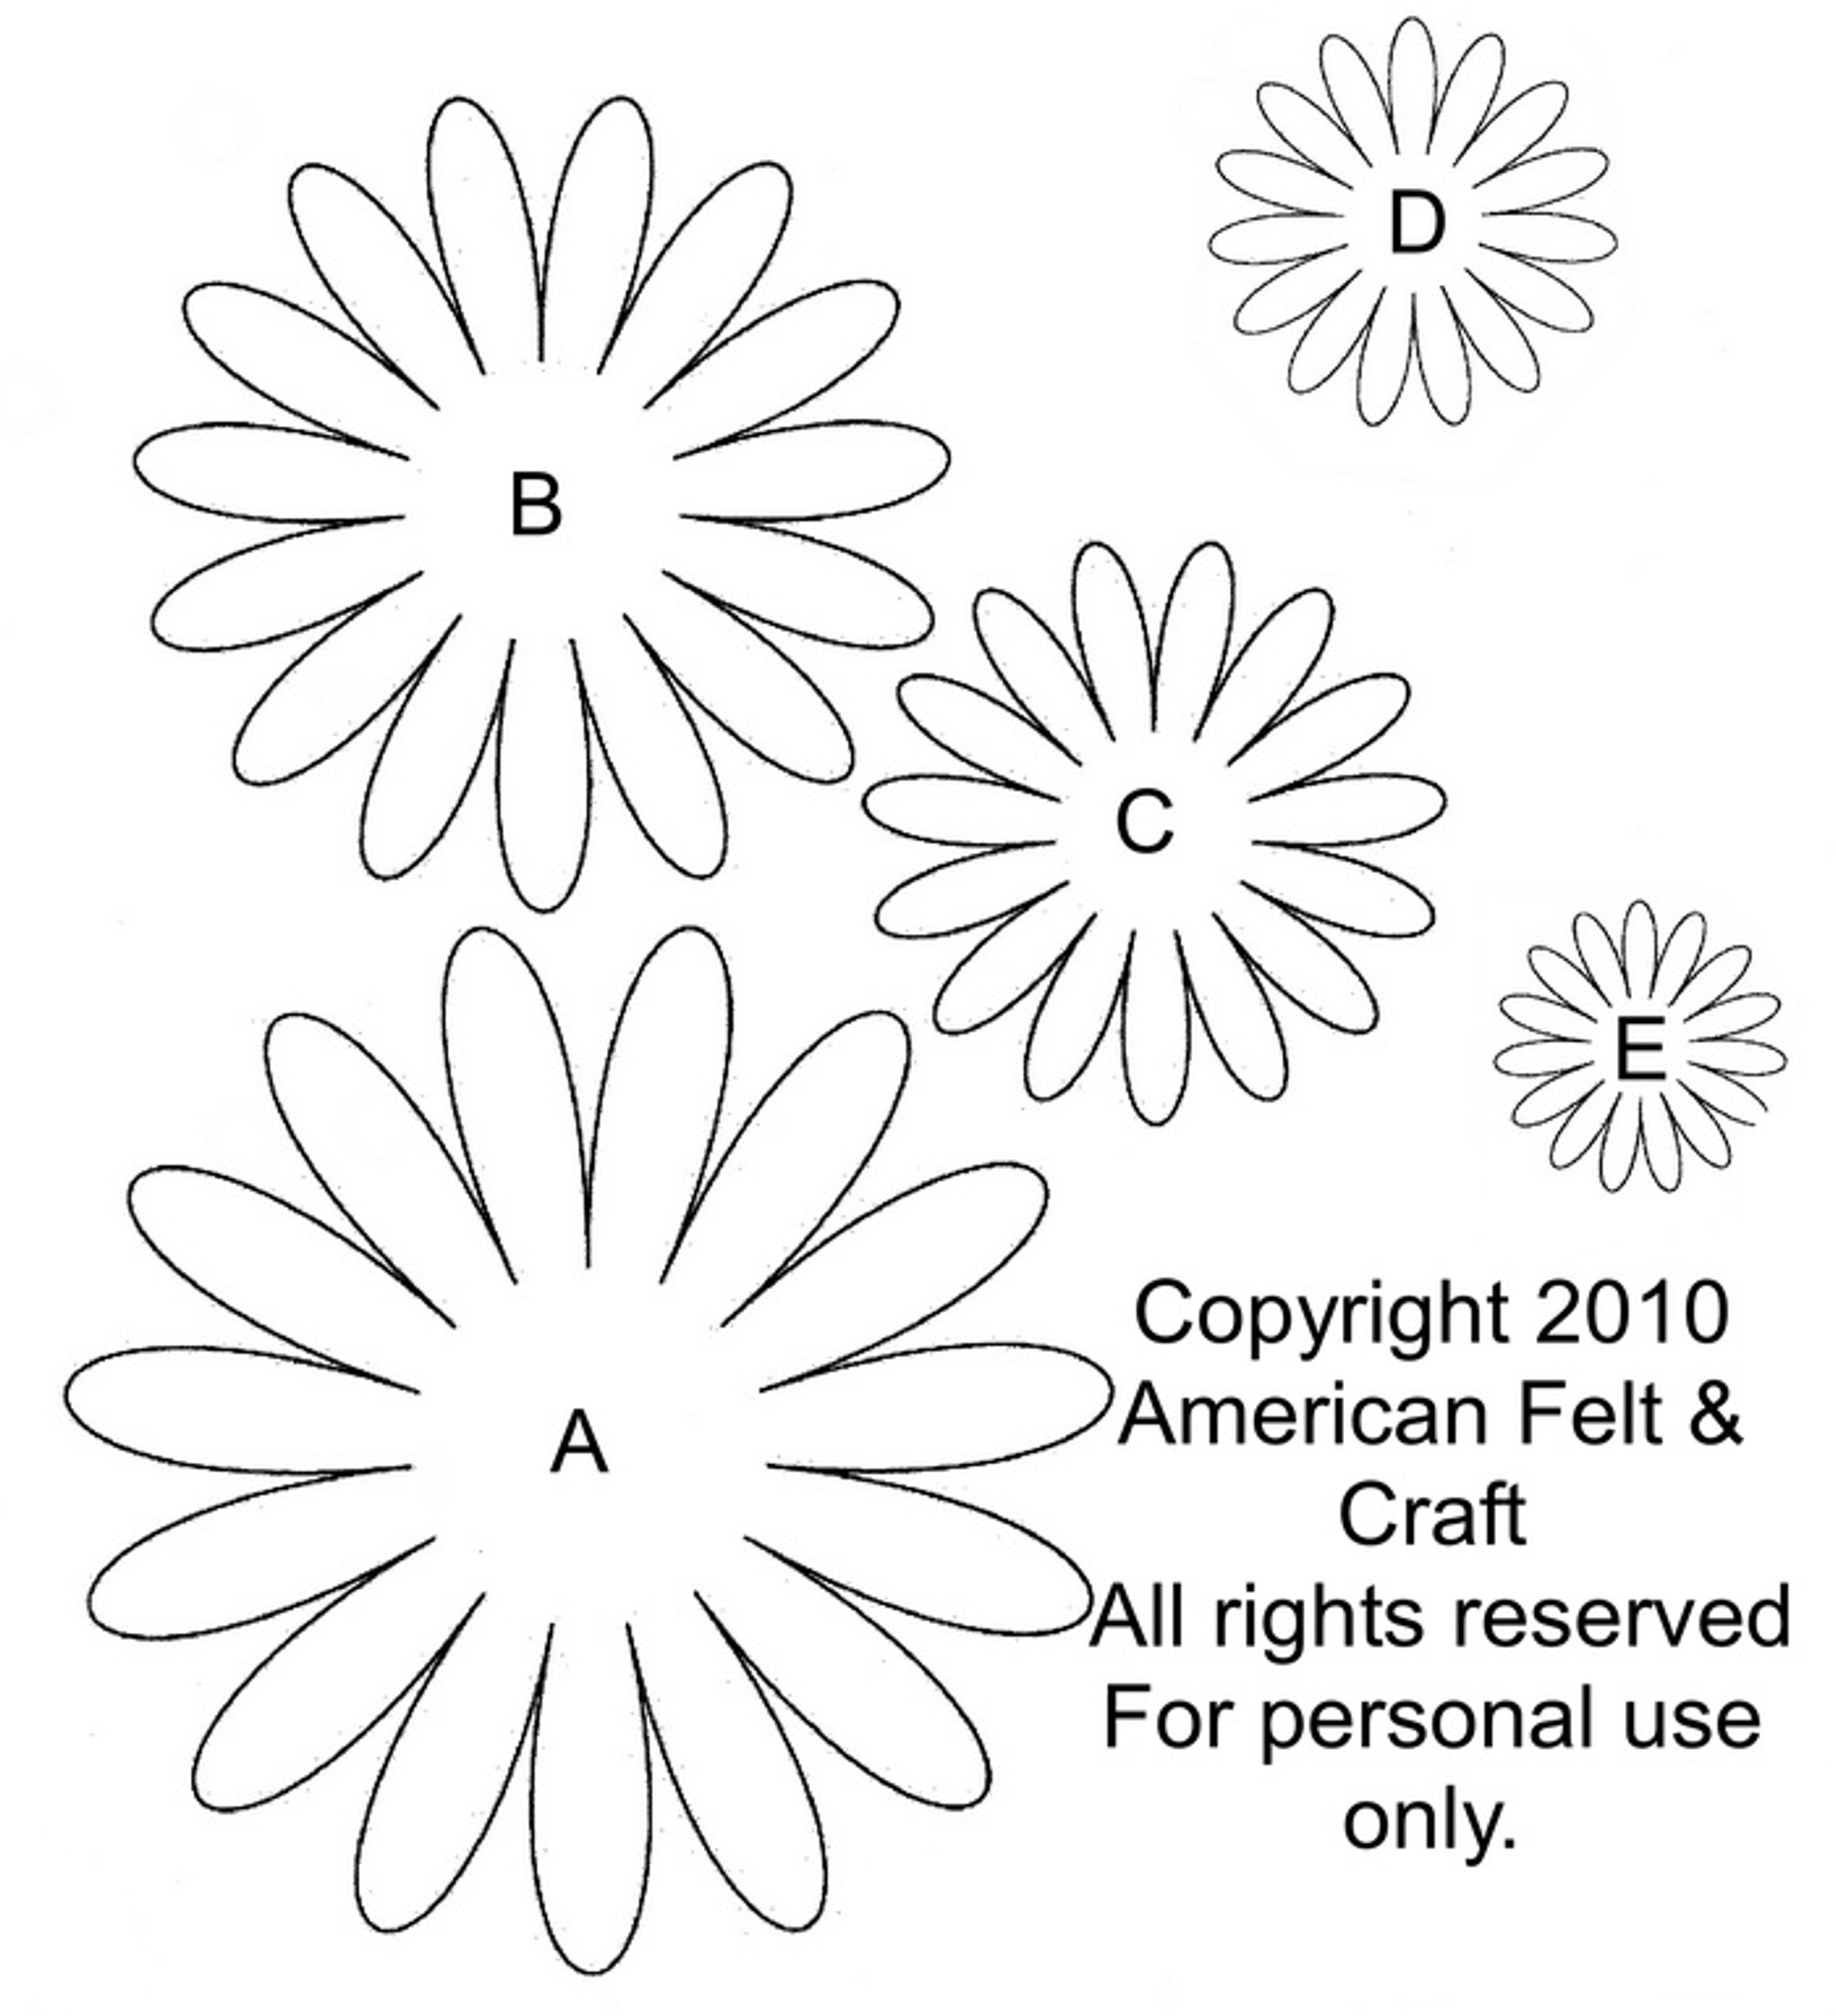 Felt gerbera daisies lazy daisies of summer american for Daisy cut out template